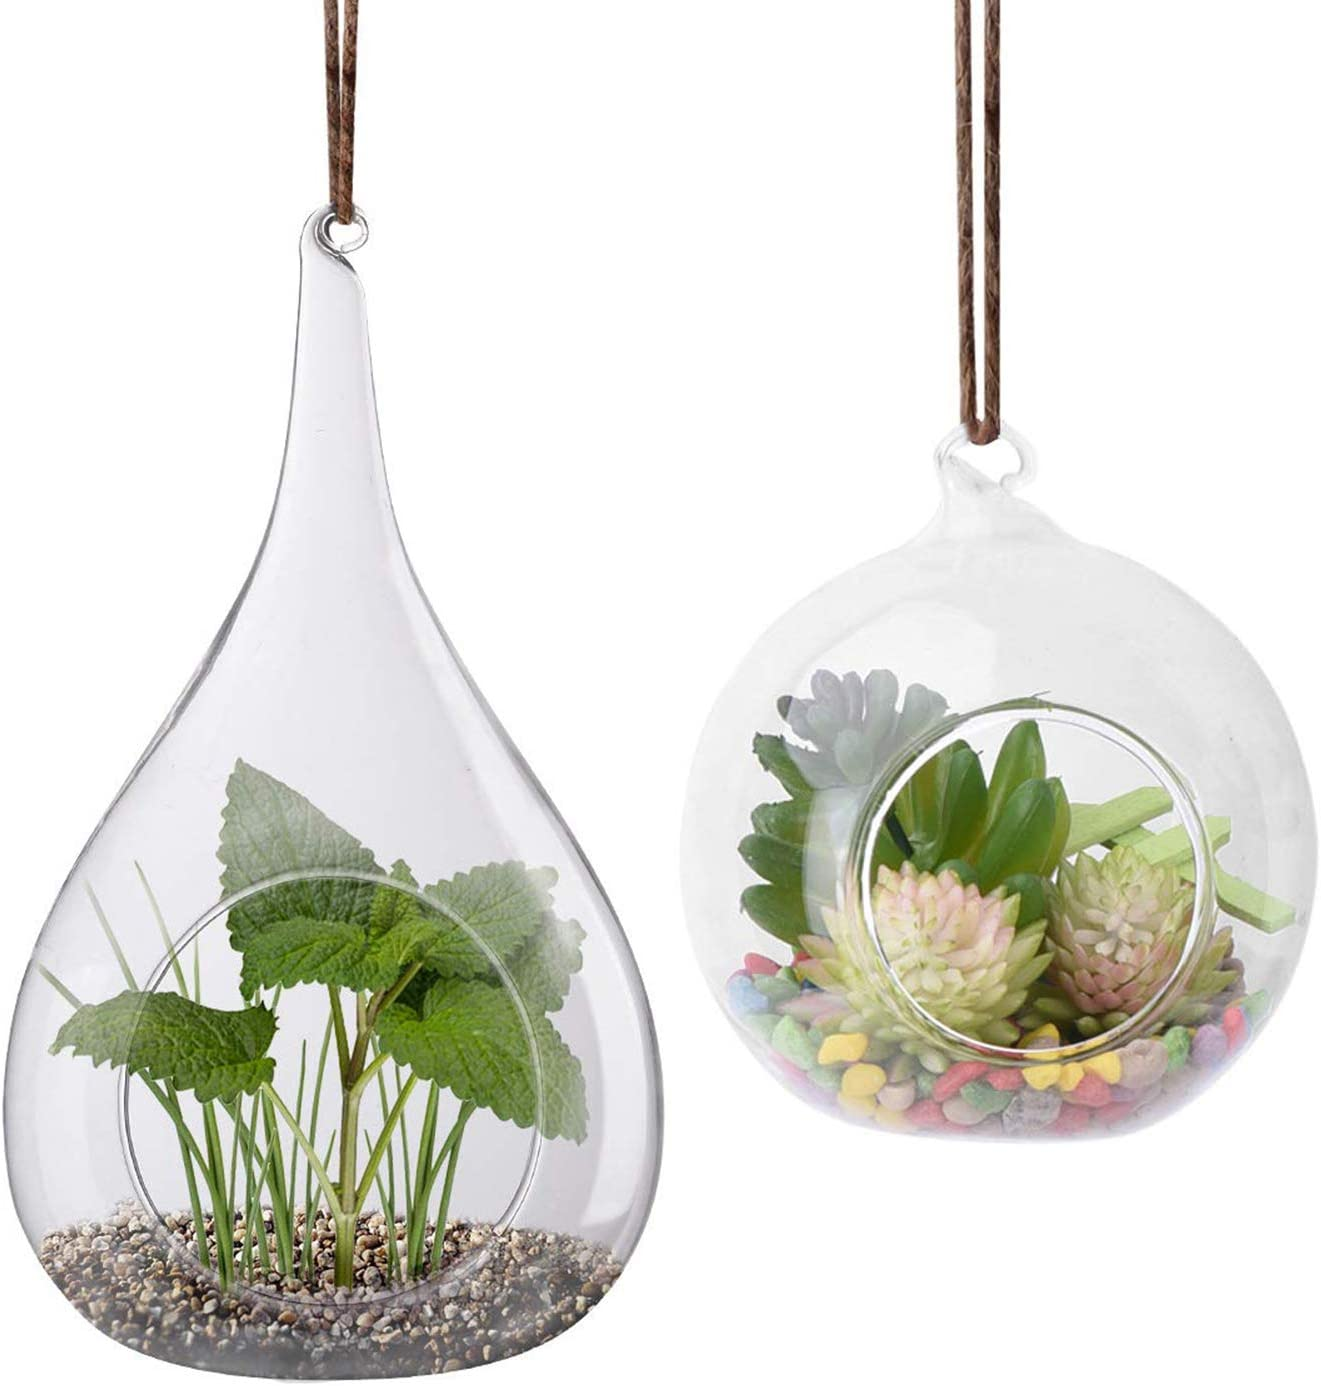 2 Pack Glass Hanging Planter Hanging Air Plant Terrarium Pots Heat-Resistant Glass for Succulent Fern Terrace Candle Holder, Garden Home Decor